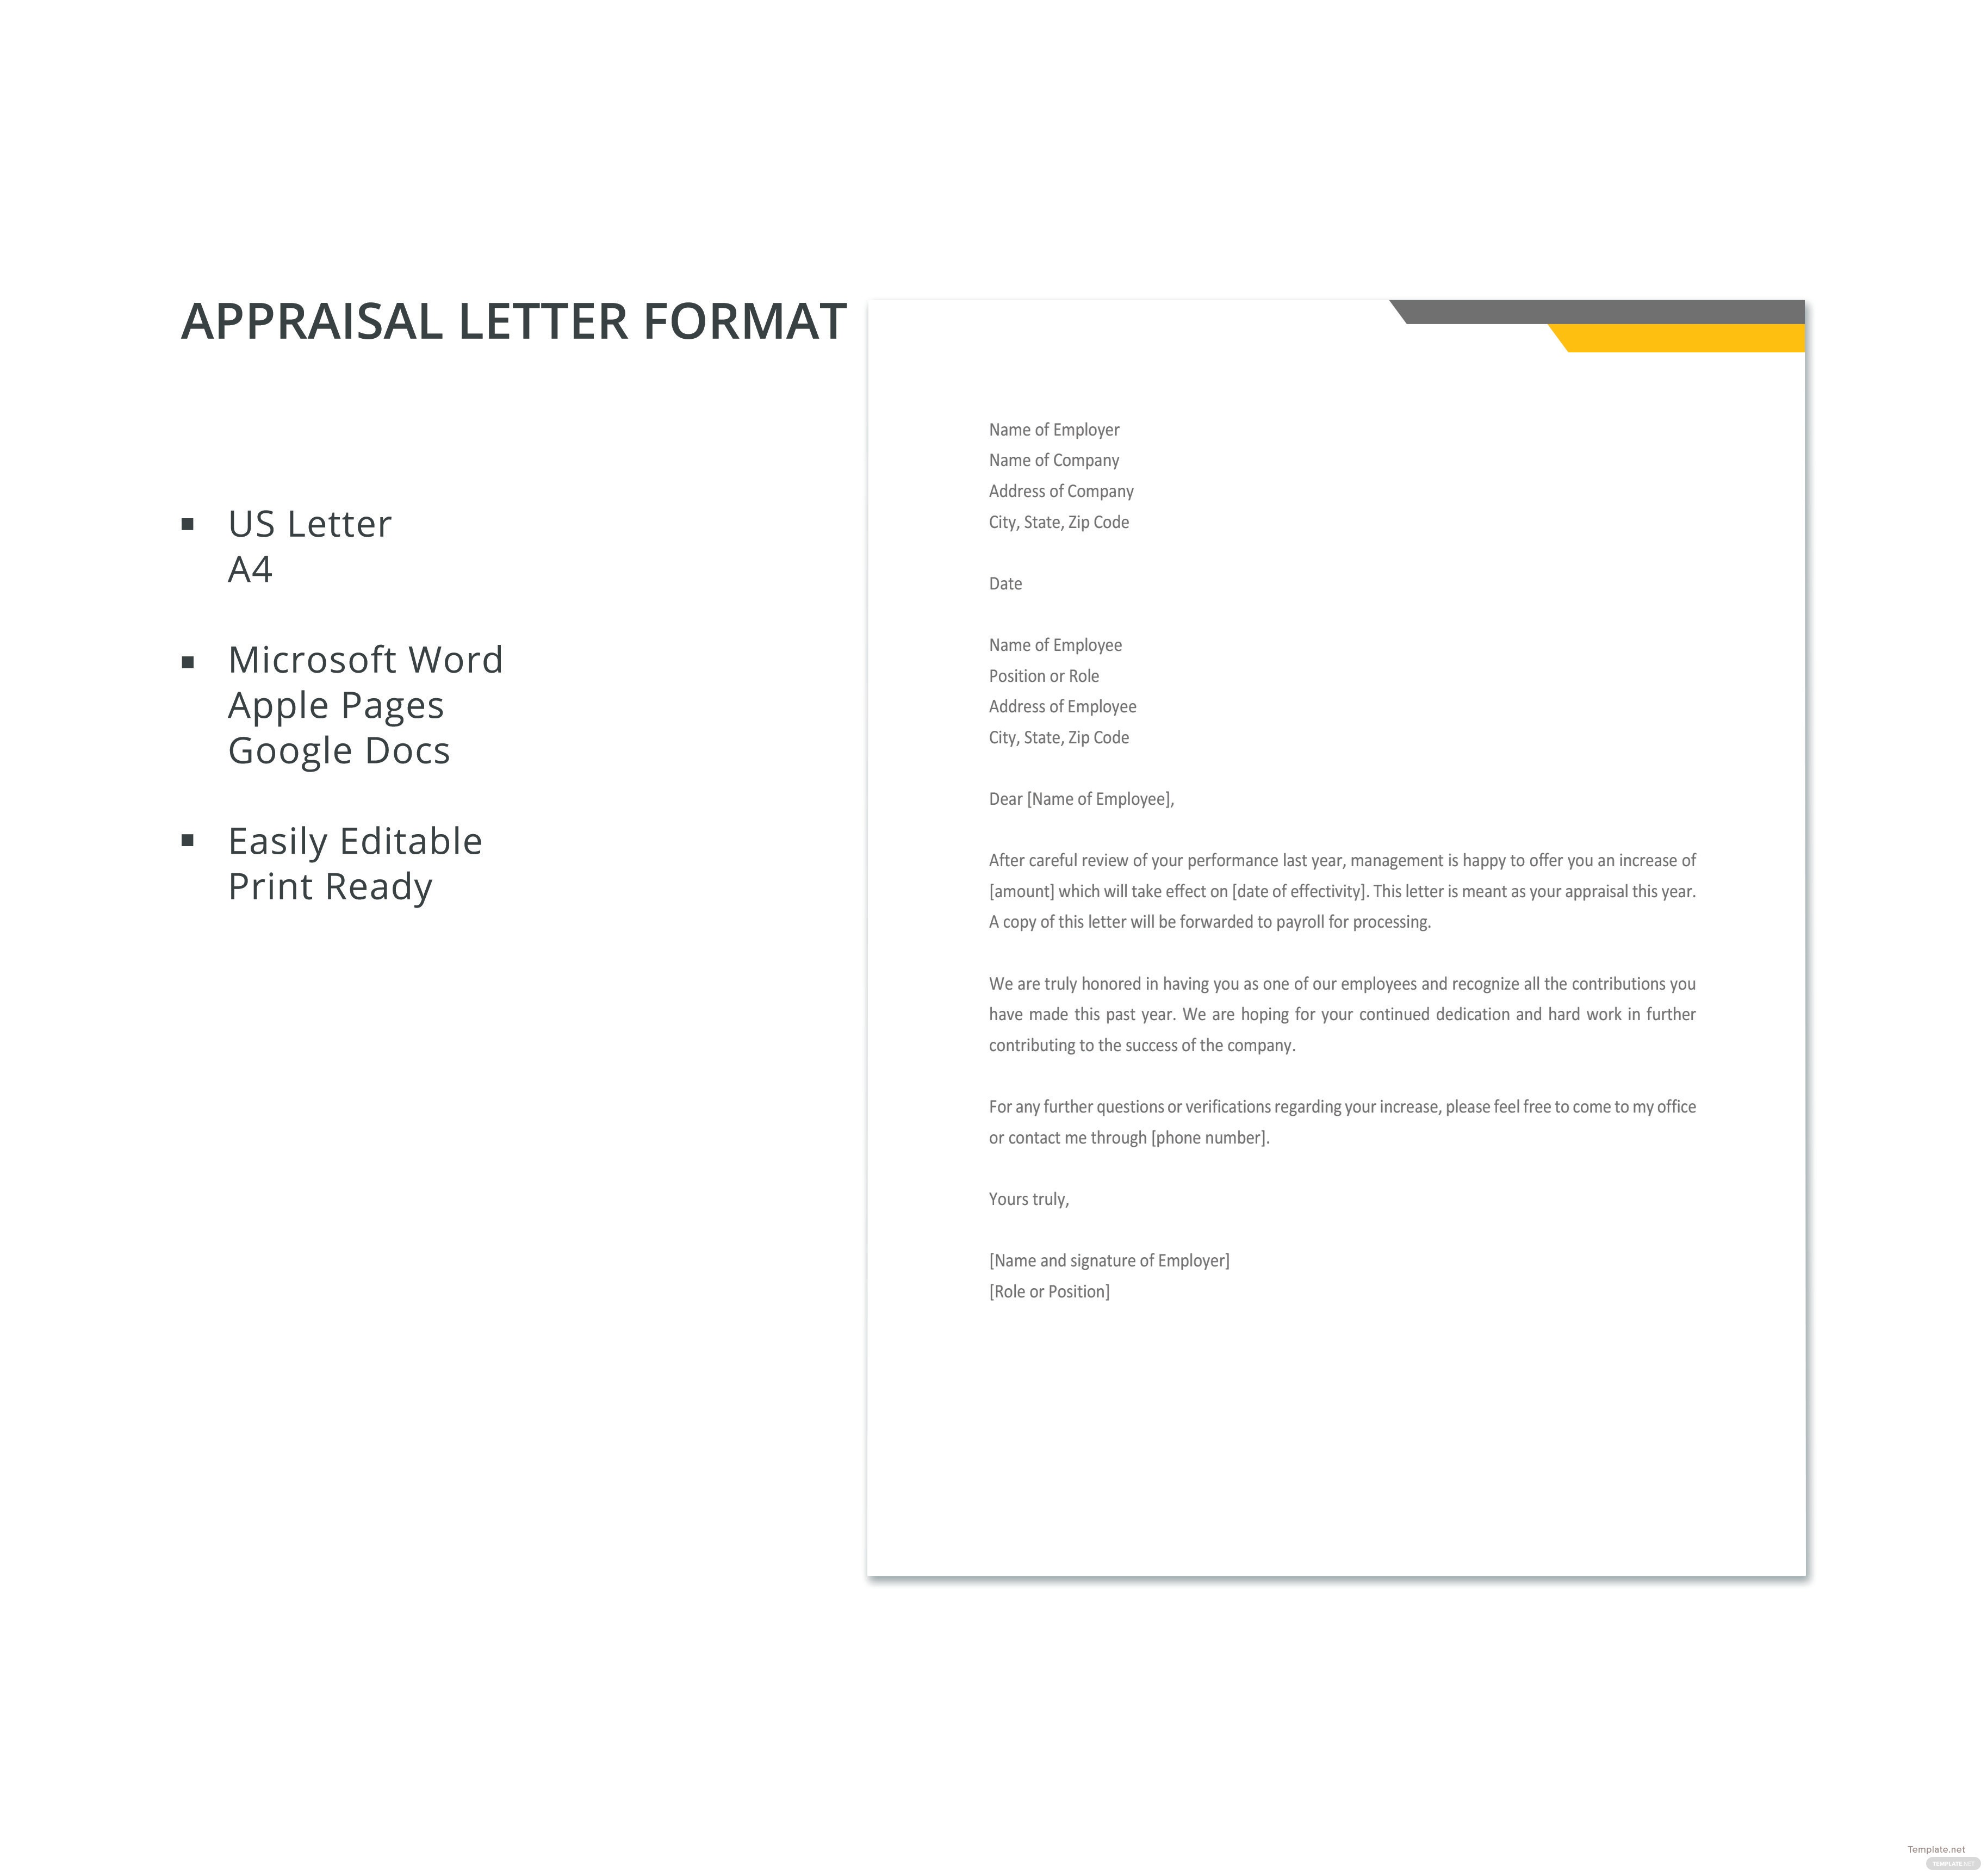 click to see full template appraisal letter format